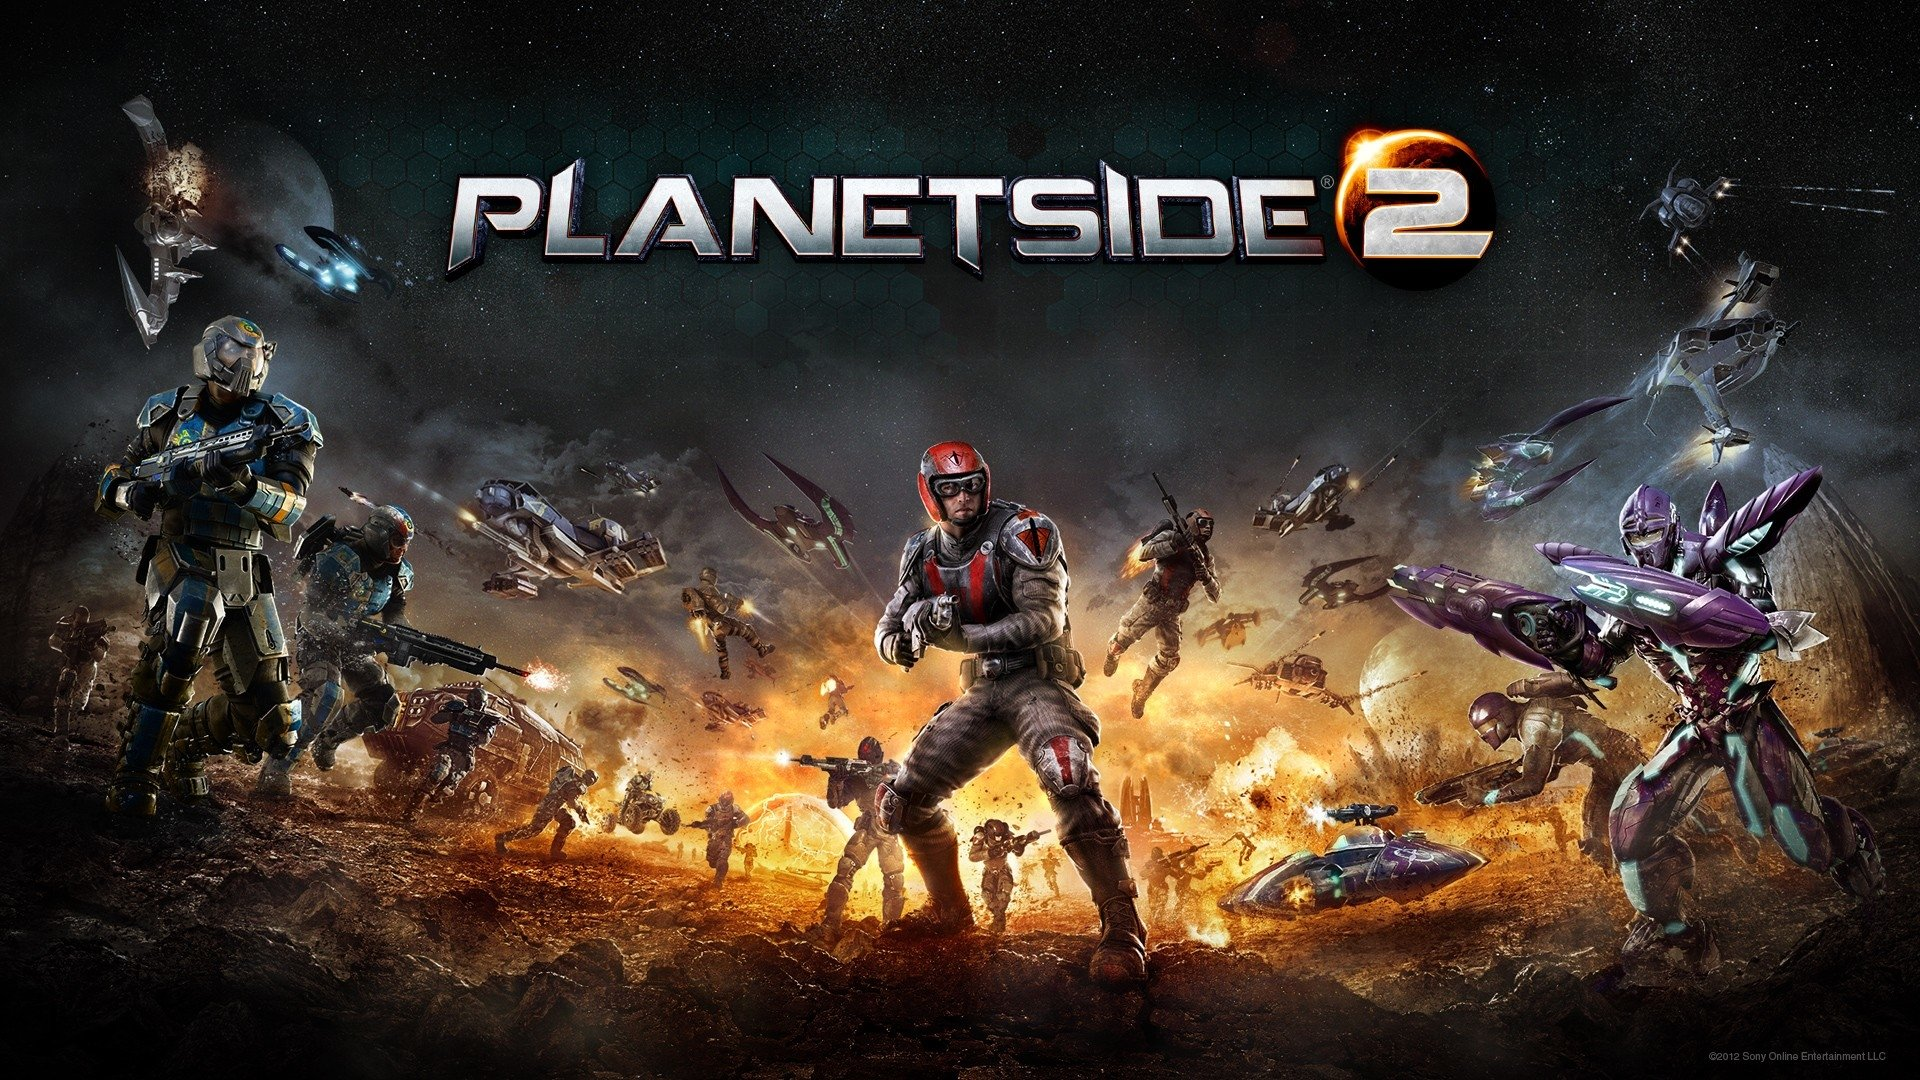 33 Planetside 2 HD Wallpapers Background Images 1920x1080